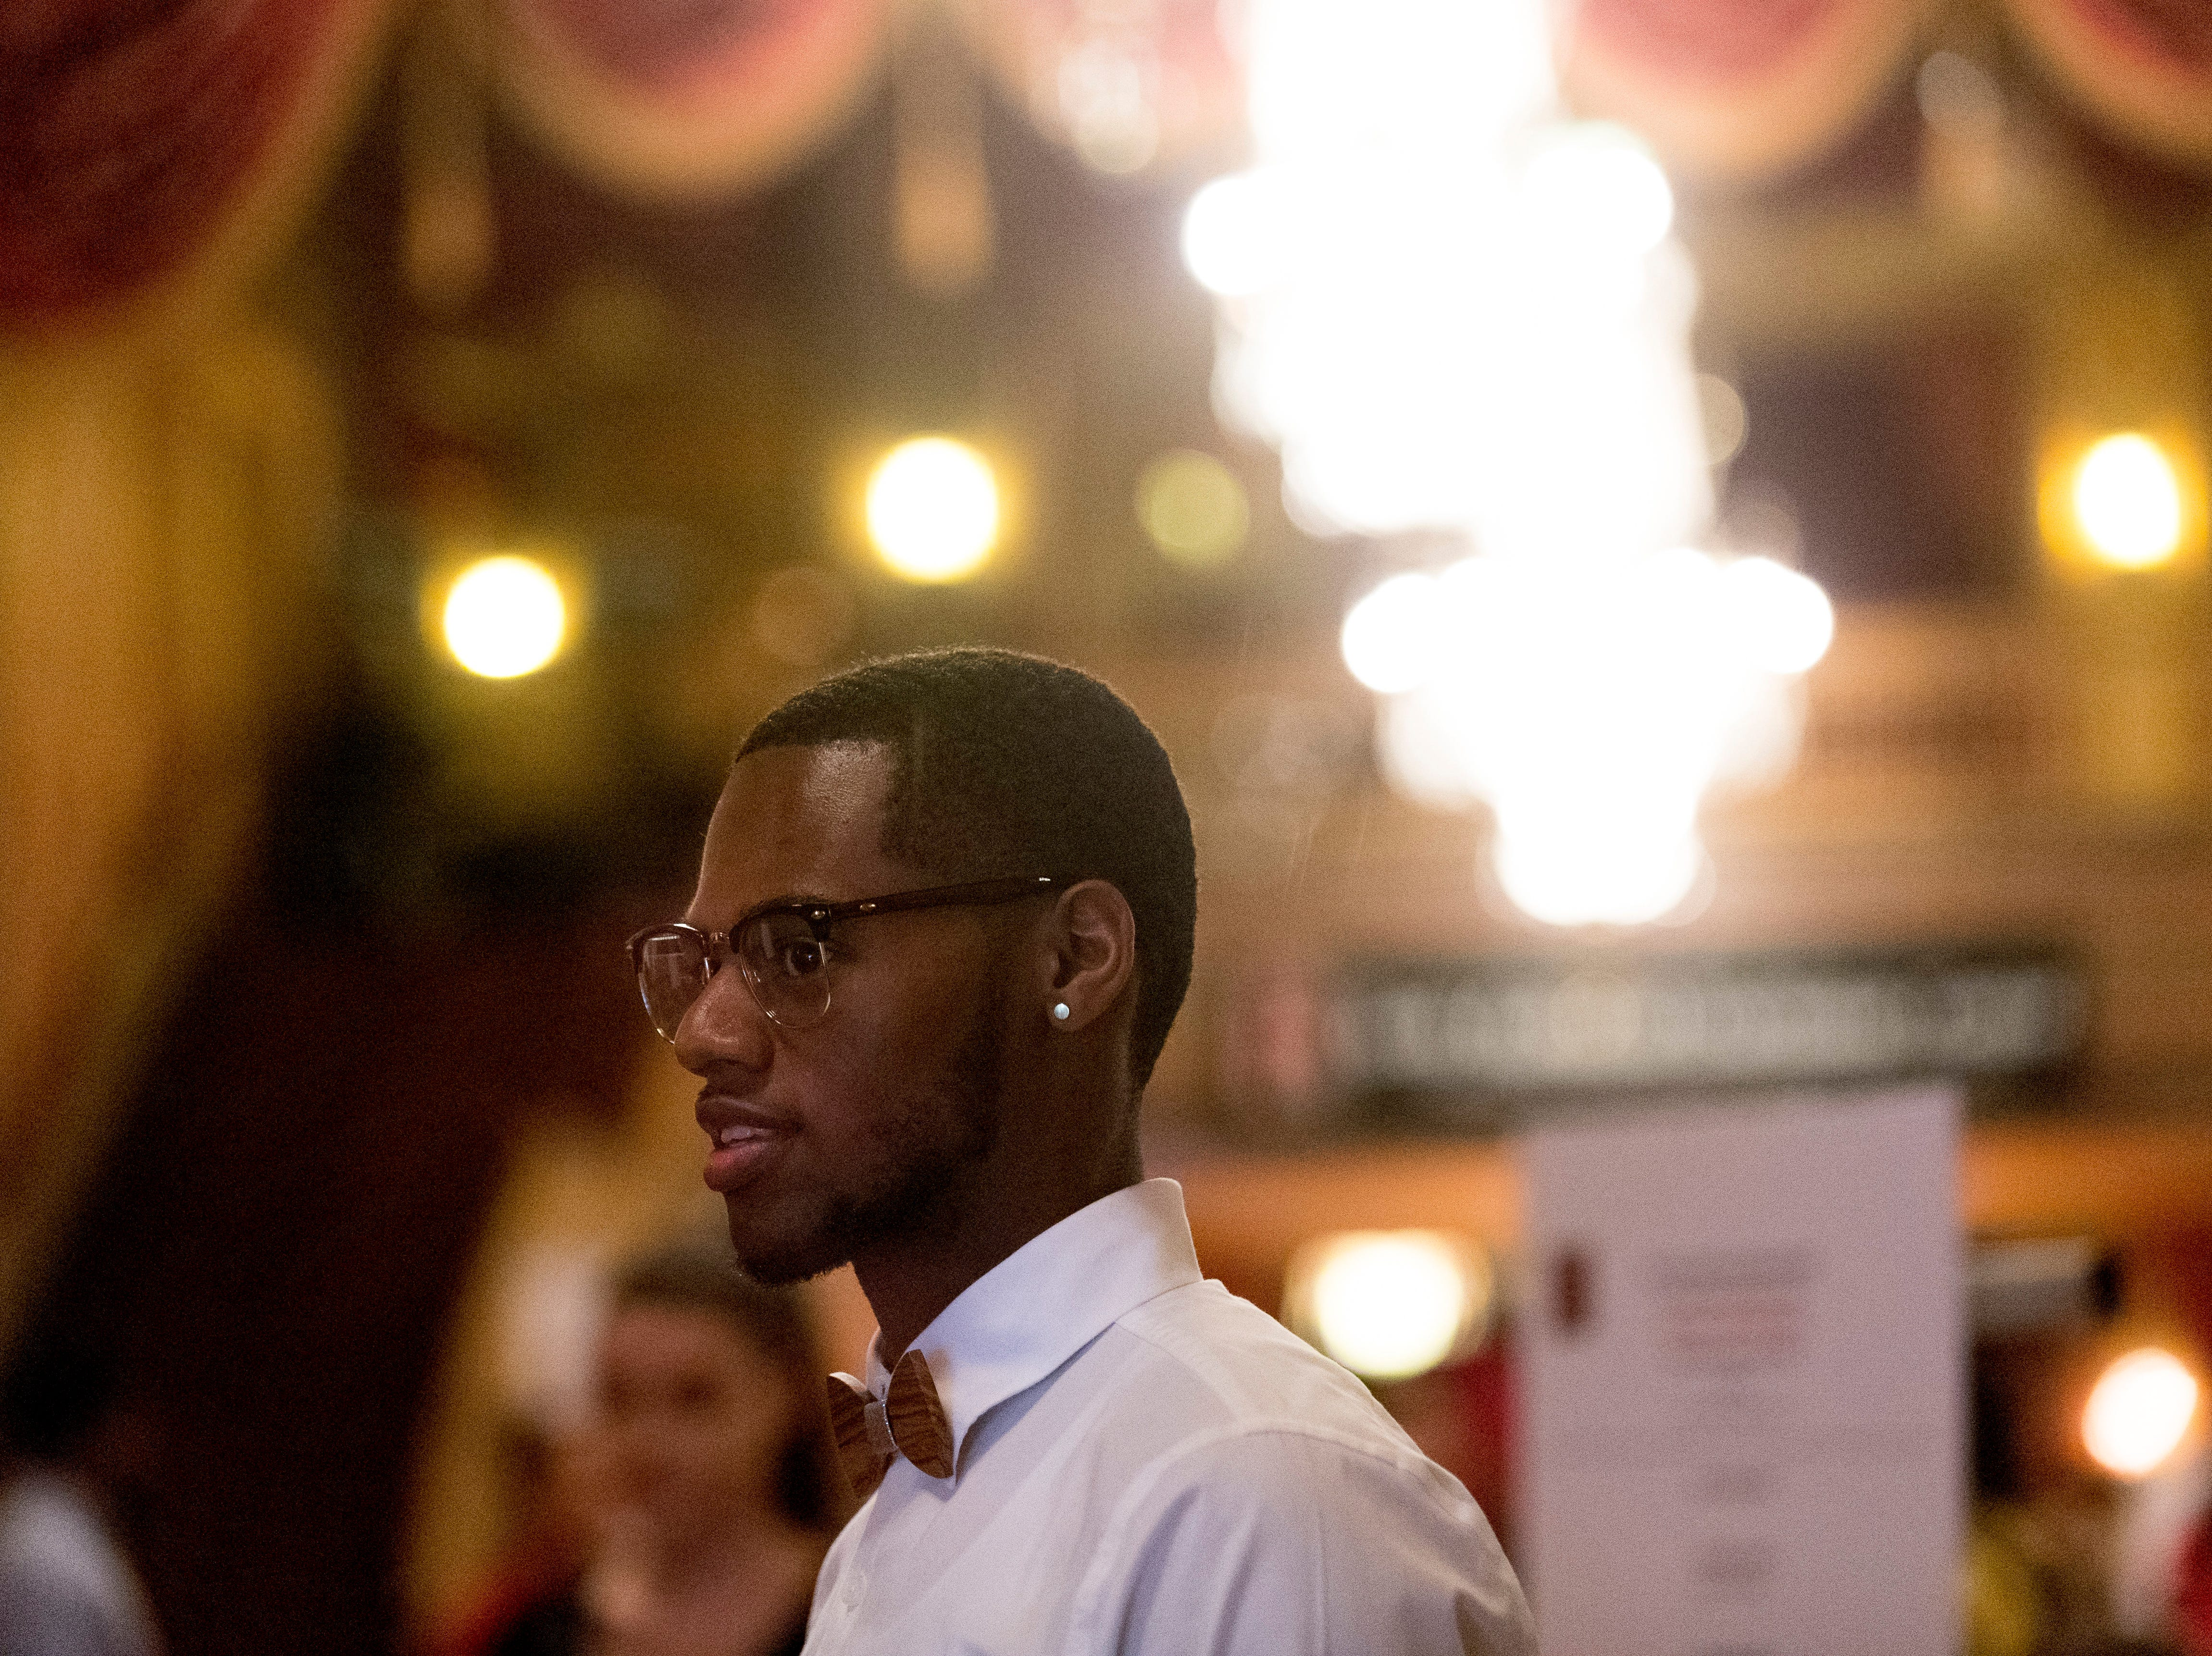 """Kwanbe Bullard welcomes guests at the Beck Cultural Center's """"Eighth of August"""" commemoration at the Tennessee Theatre in Knoxville, Tennessee on Wednesday, August 8, 2018. Filmmaker Loki Mulholland and civil rights icon Joan Trumpauer Mulholland were special guests at the debut screening of Black, White & U.S."""